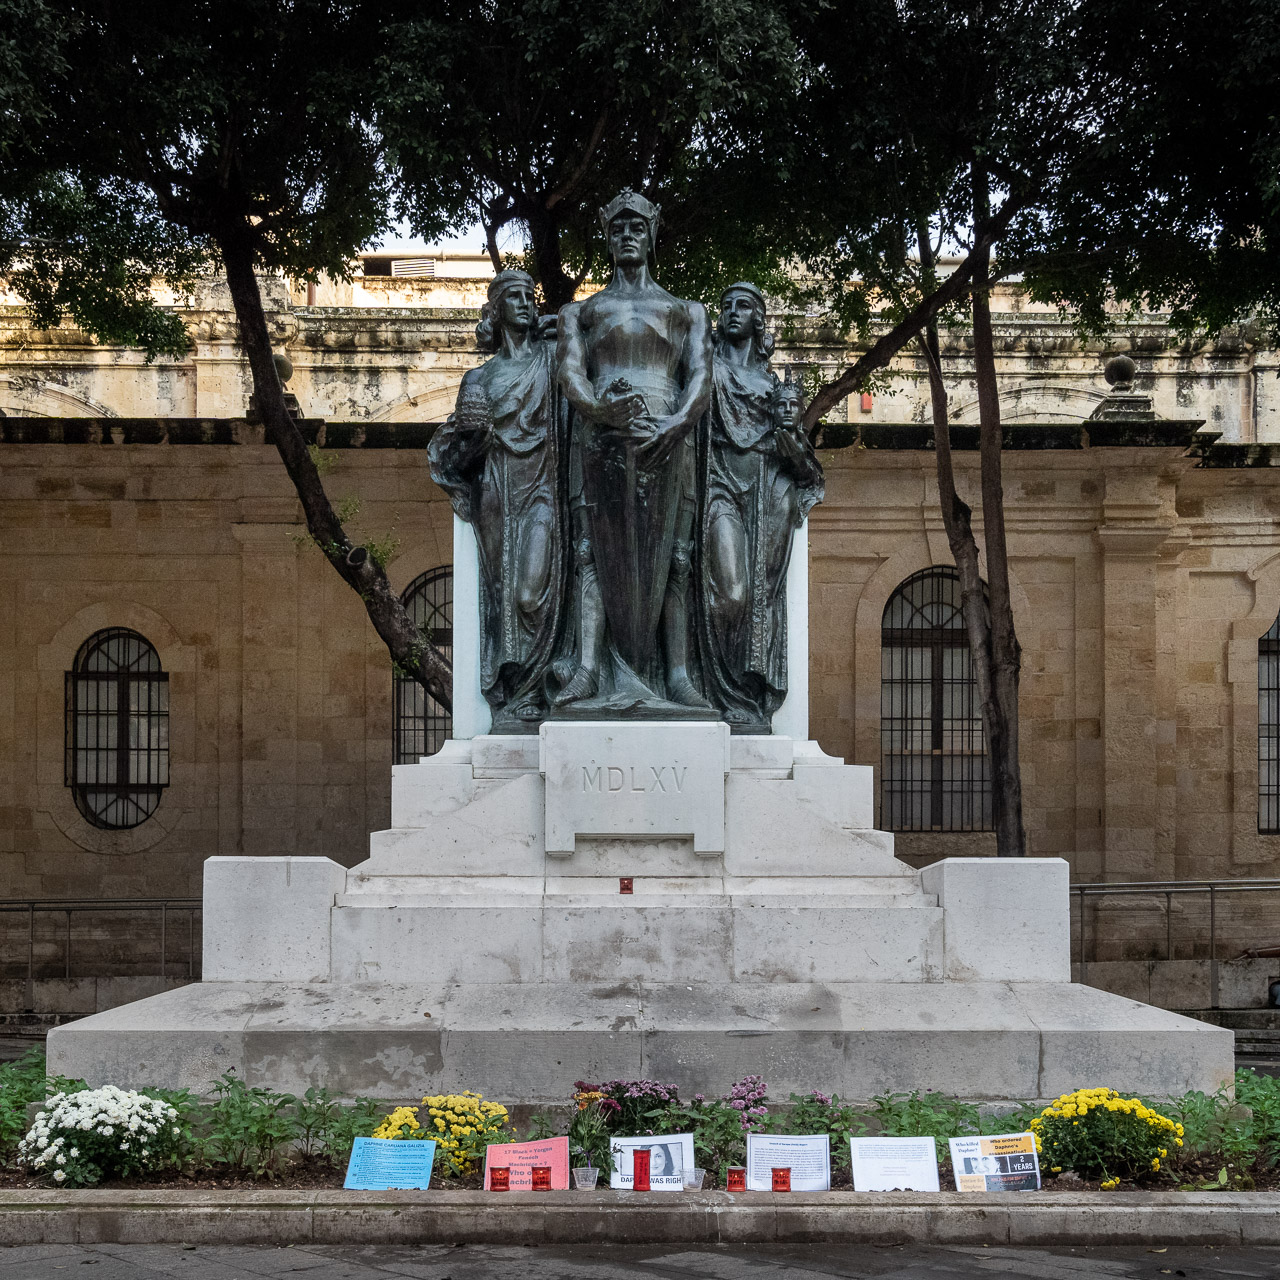 The Daphne Caruana Galizia Memorial